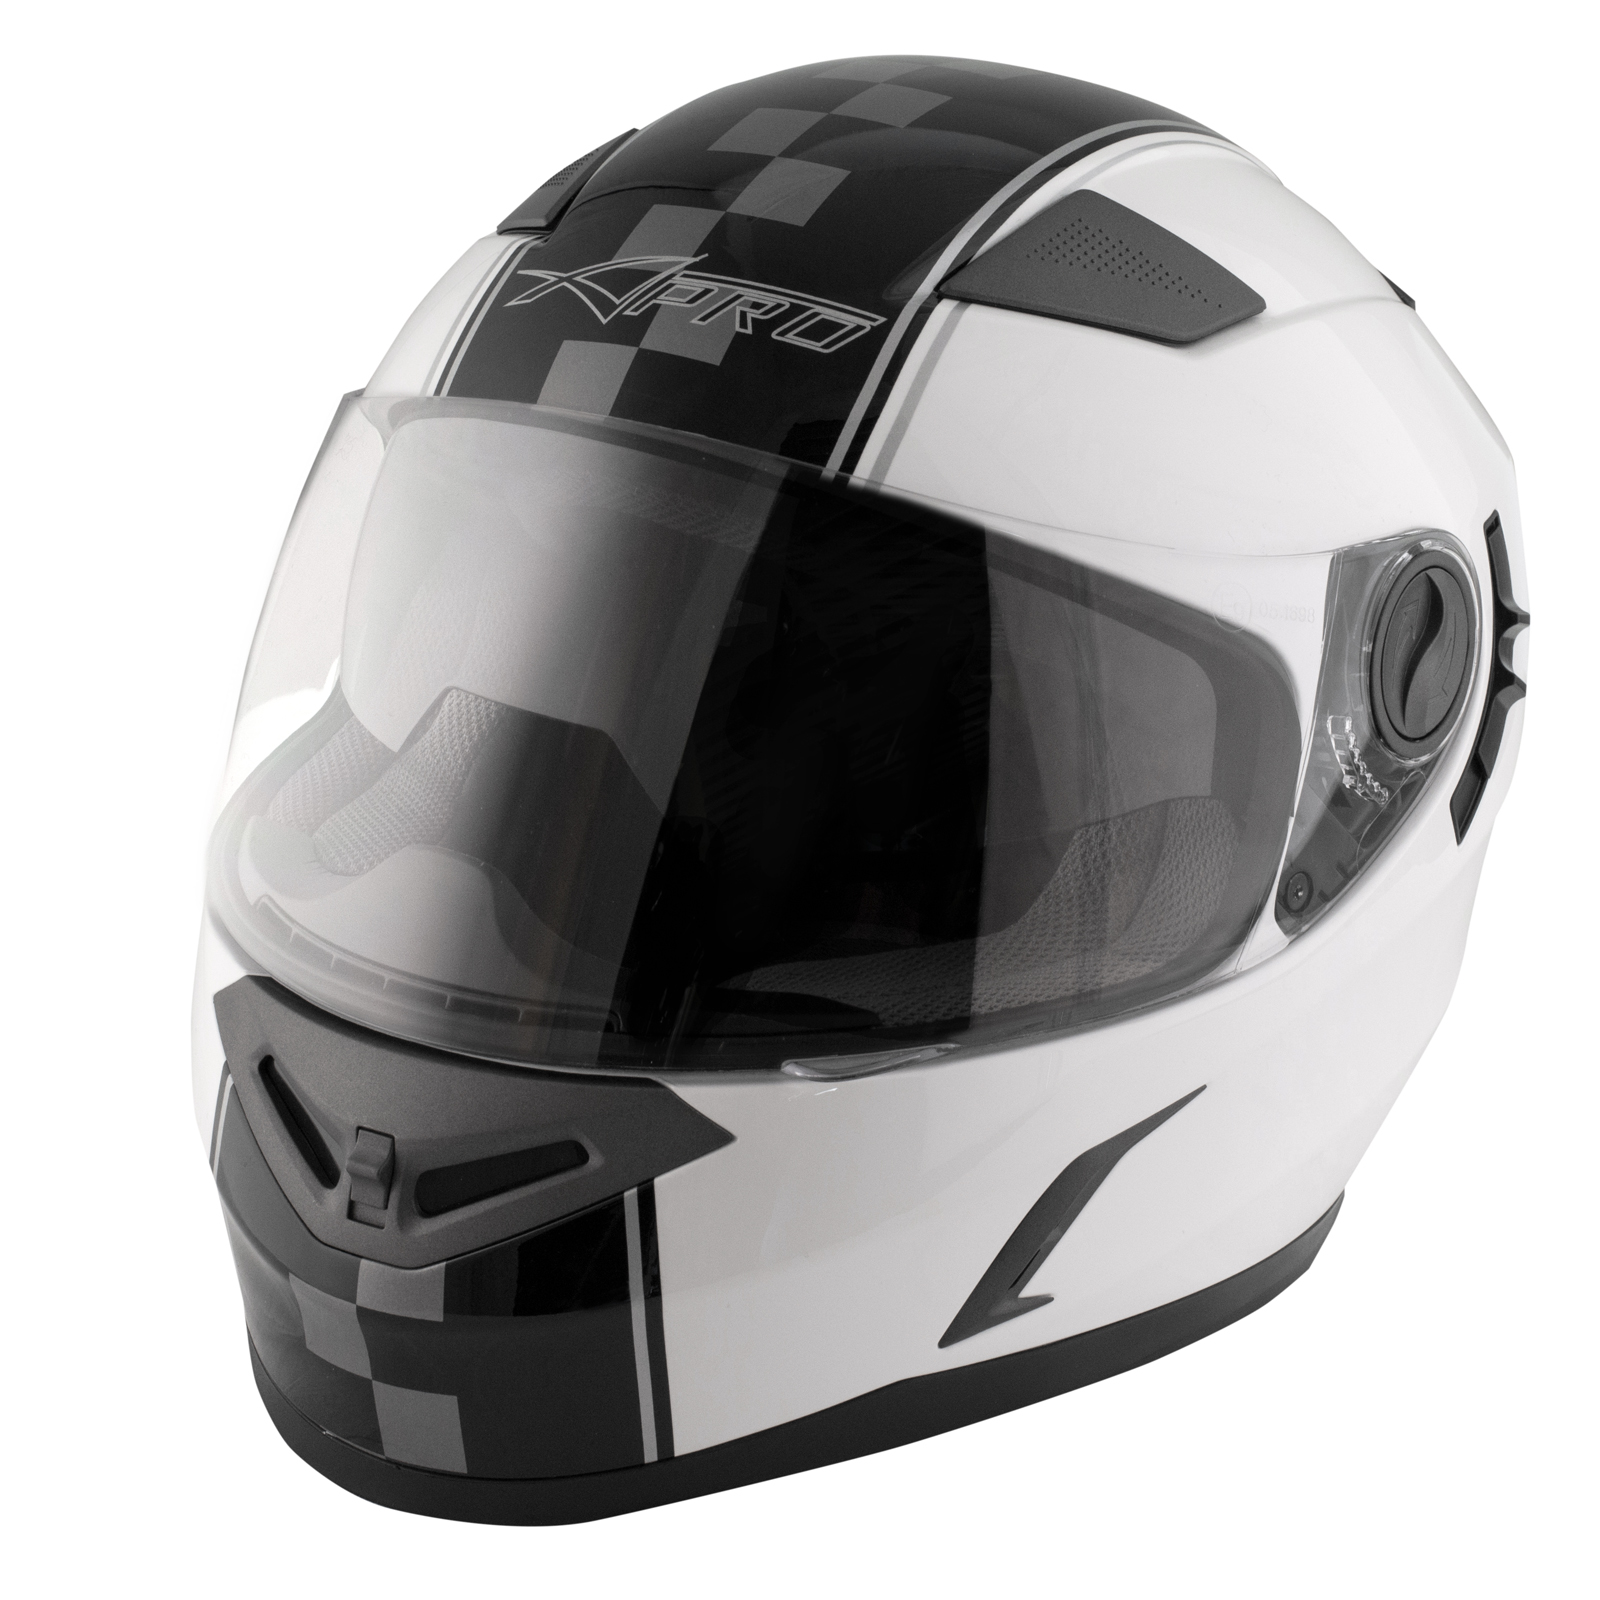 casque homologu integral moto scooter visi re pare soleil touring blanc ebay. Black Bedroom Furniture Sets. Home Design Ideas